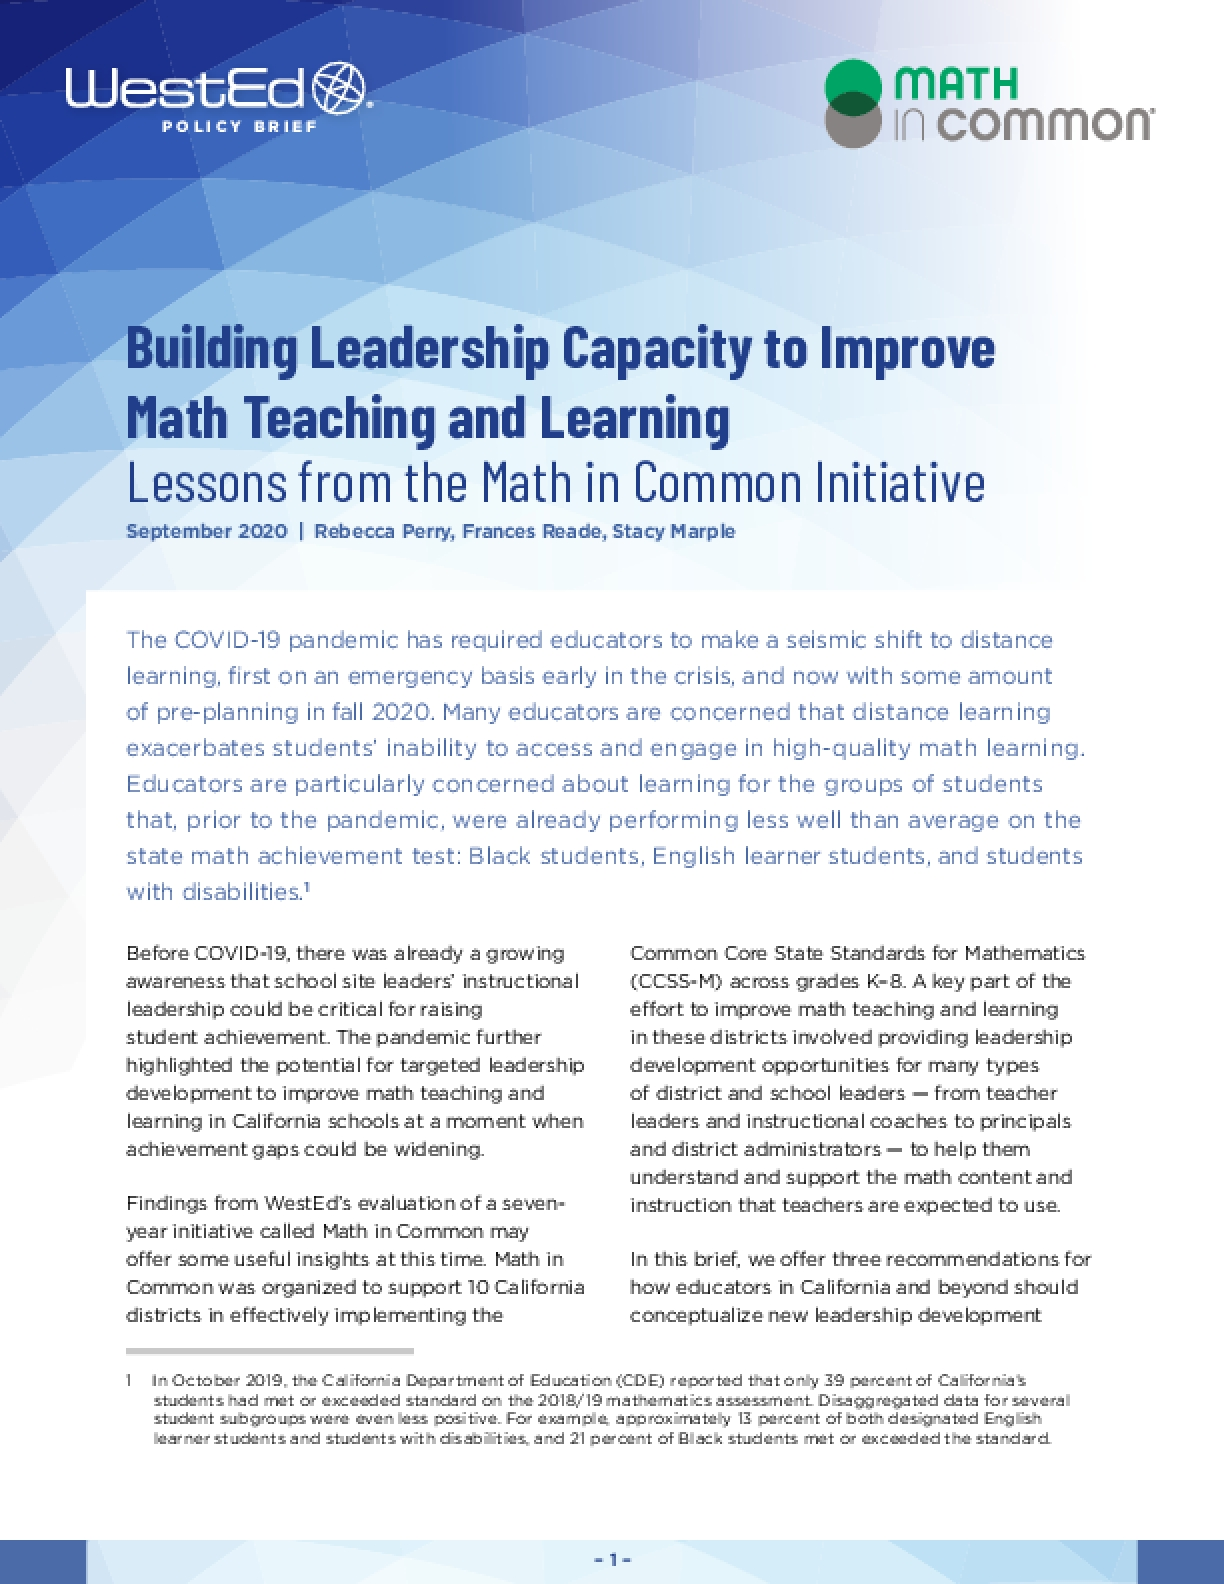 Building Leadership Capacity to Improve Math Teaching and Learning: Lessons from the Math in Common Initiative